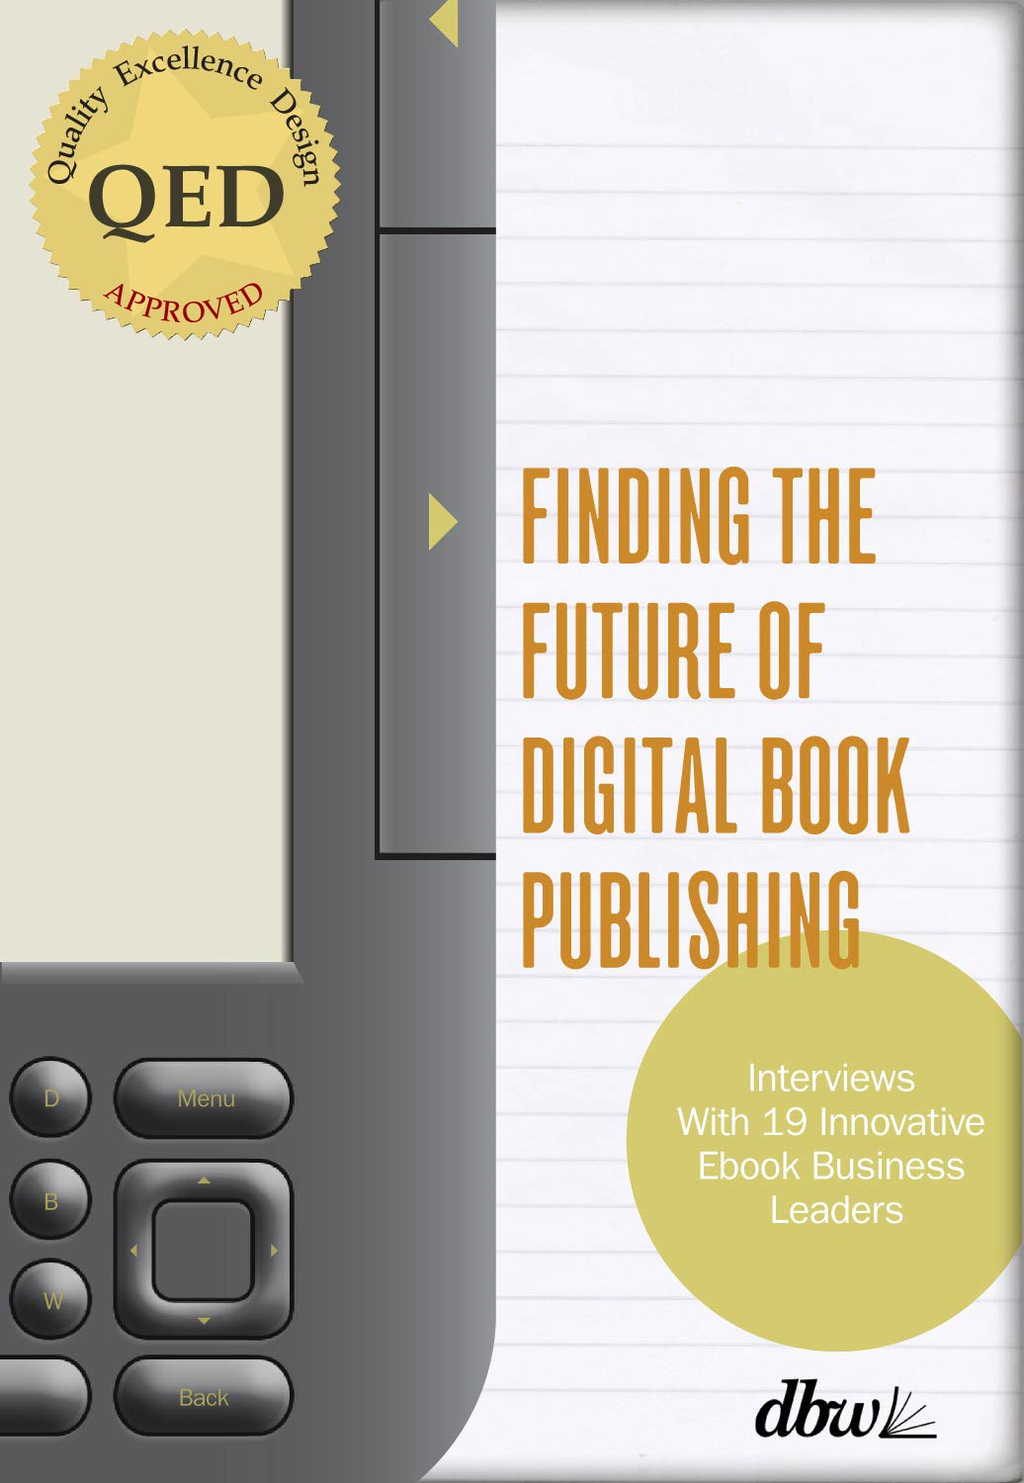 """Finding the Future of Digital Book Publishing """"Interviews With 19 Innovative Ebook Business Leaders"""""""